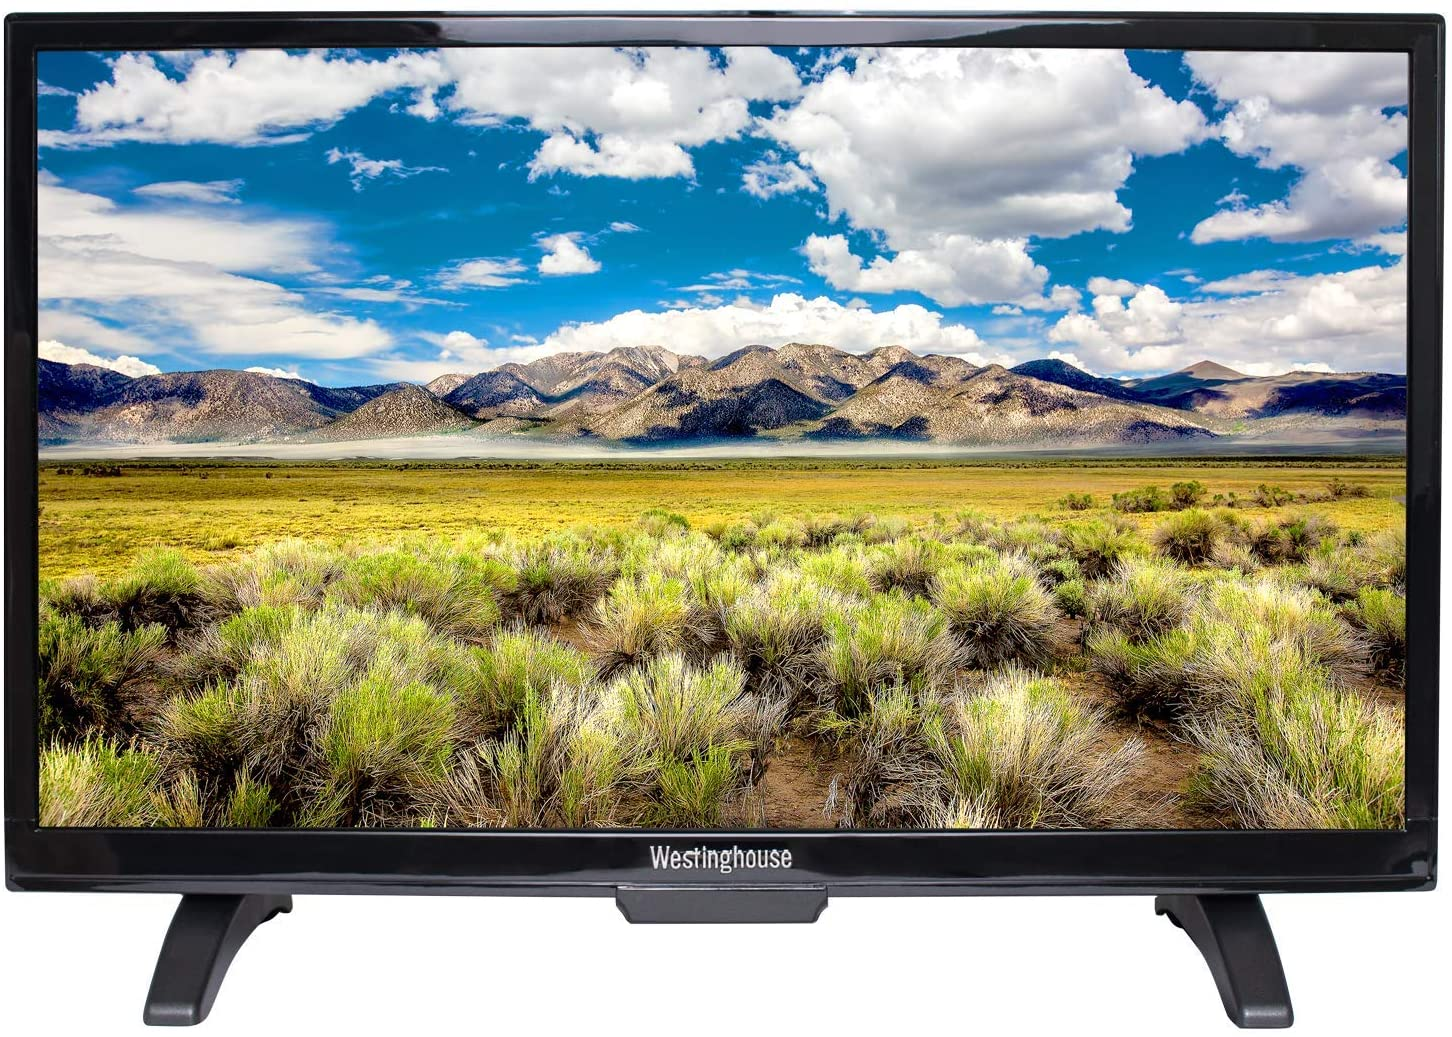 Westinghouse 19 inch 720p